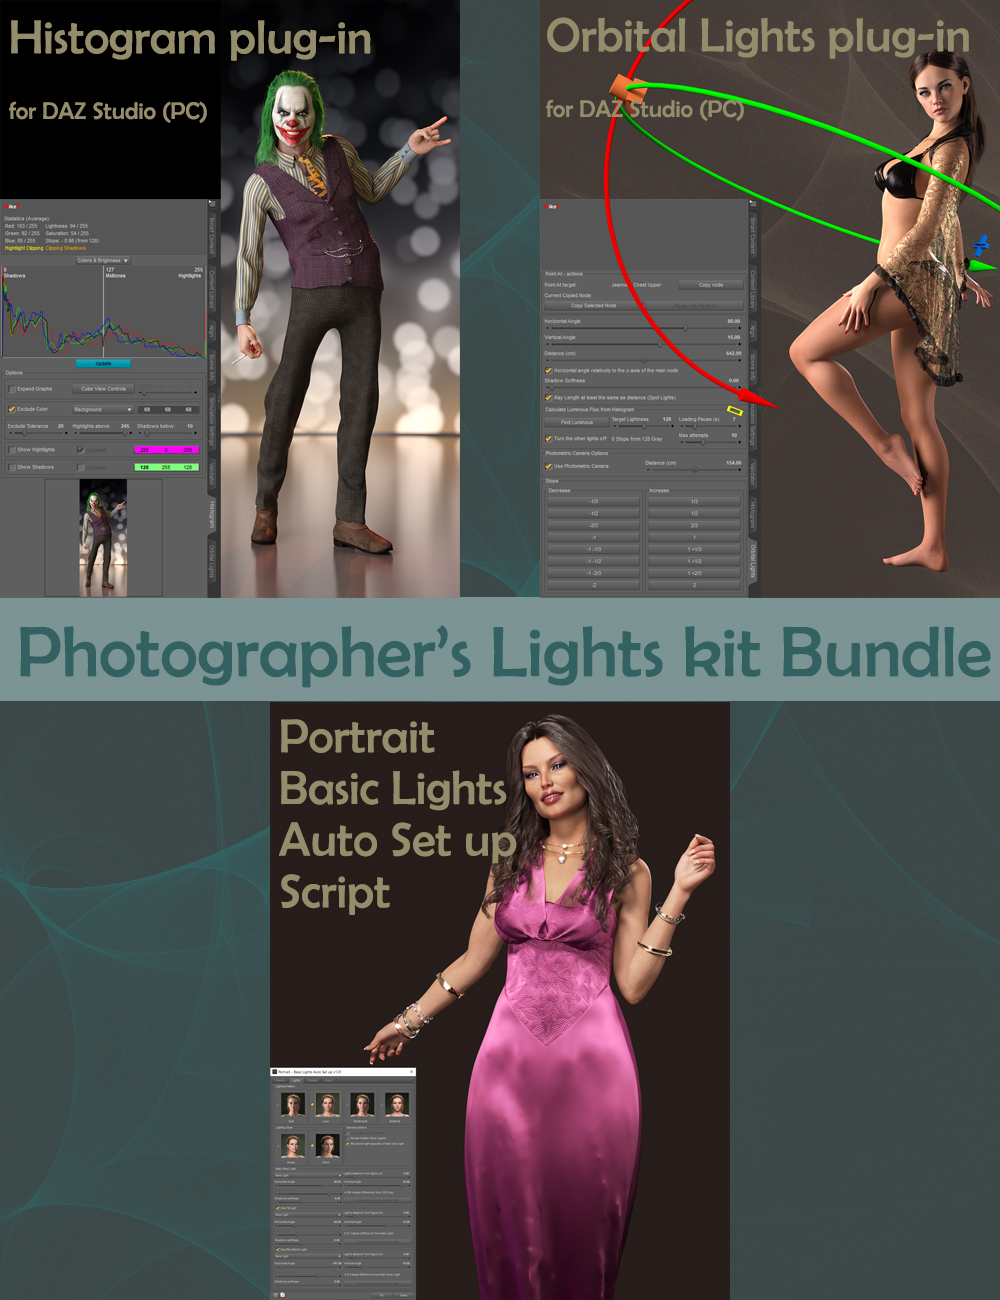 MD Photographer's Lights Kit Bundle by: MikeD, 3D Models by Daz 3D